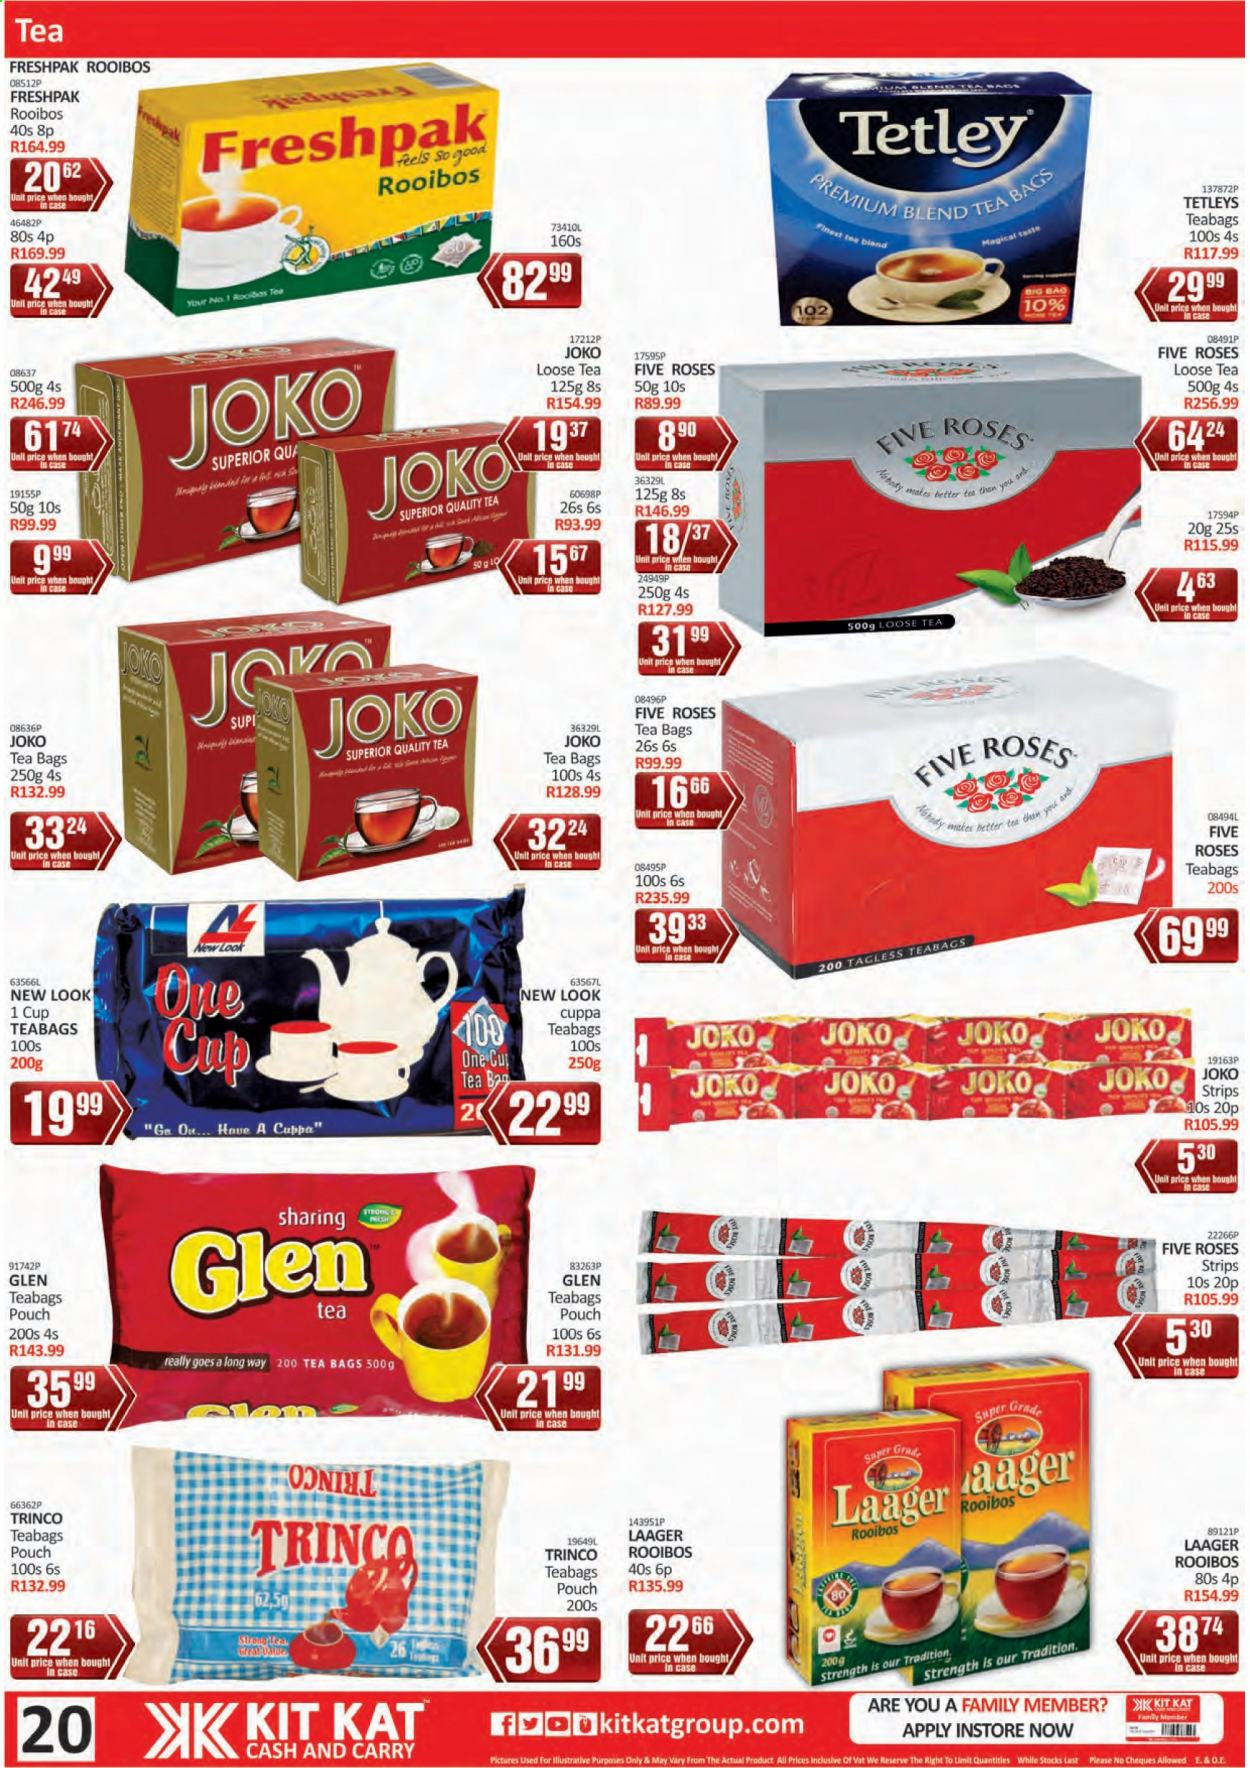 Kit Kat Cash & Carry catalogue  - 02.11.2021 - 05.12.2021. Page 20.